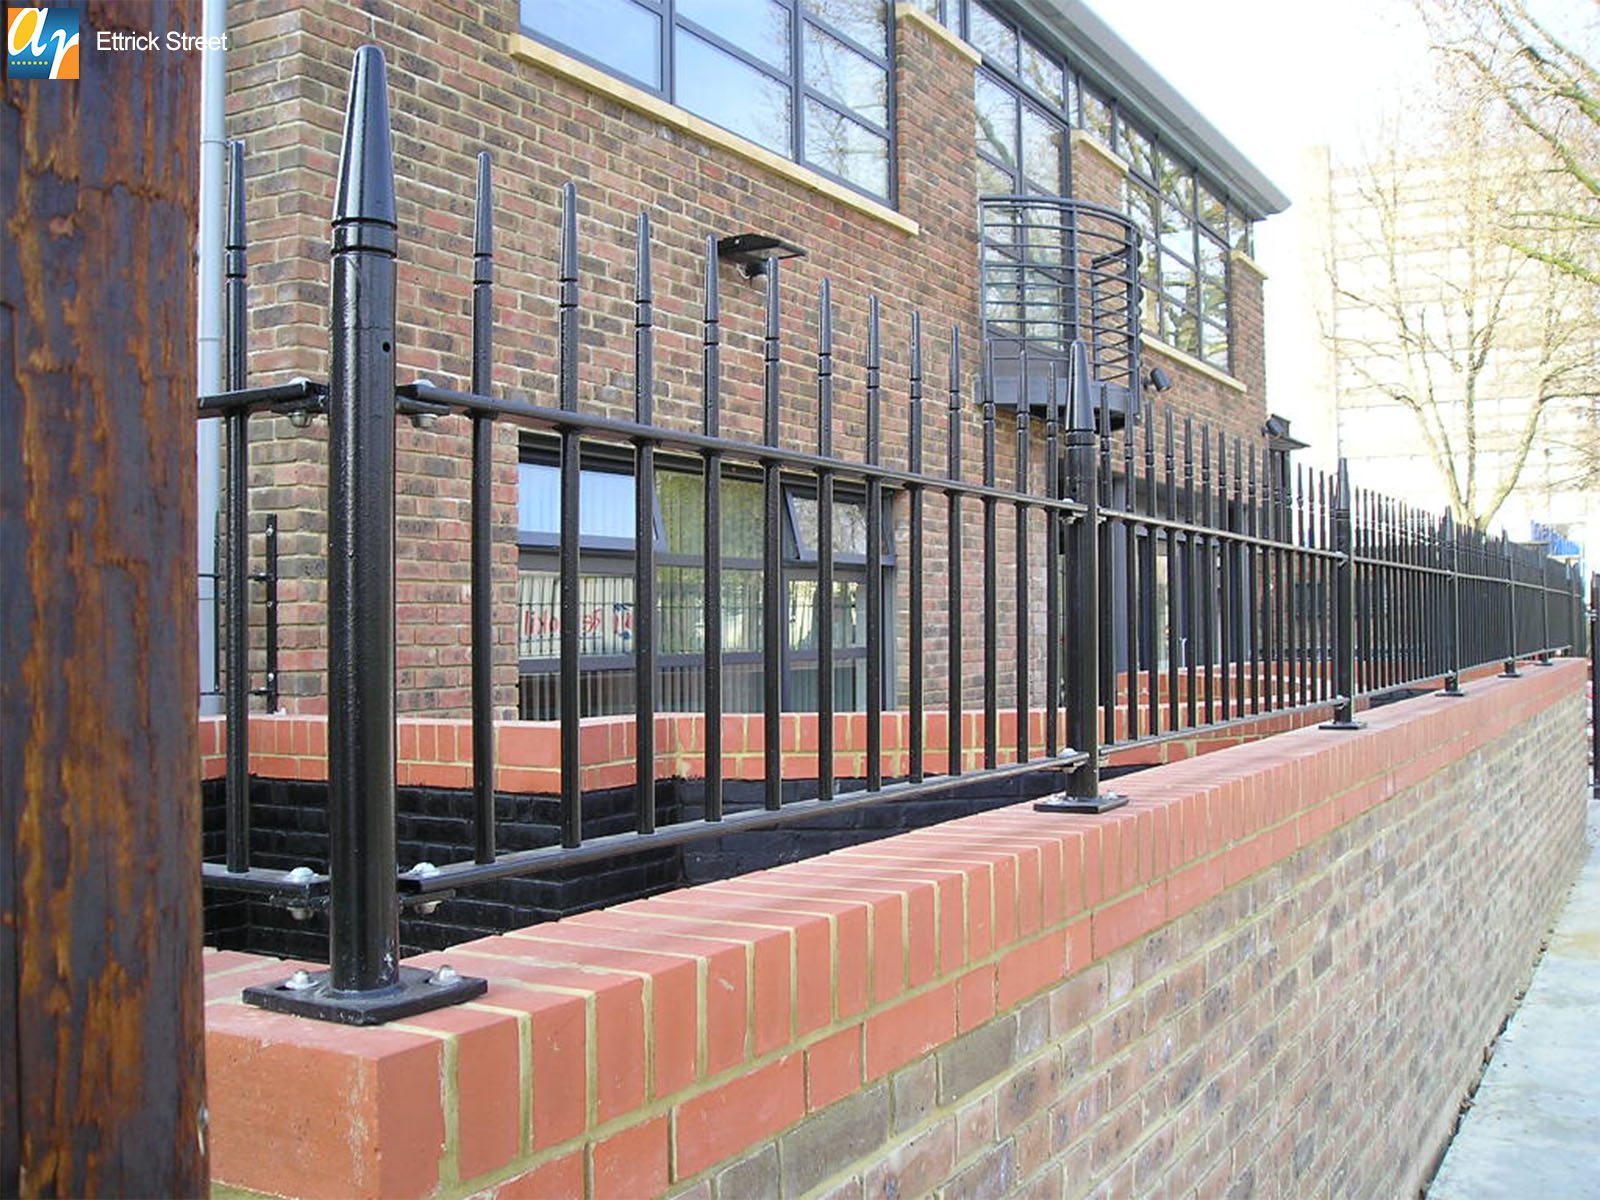 Ettrick street albany vertical bar railings